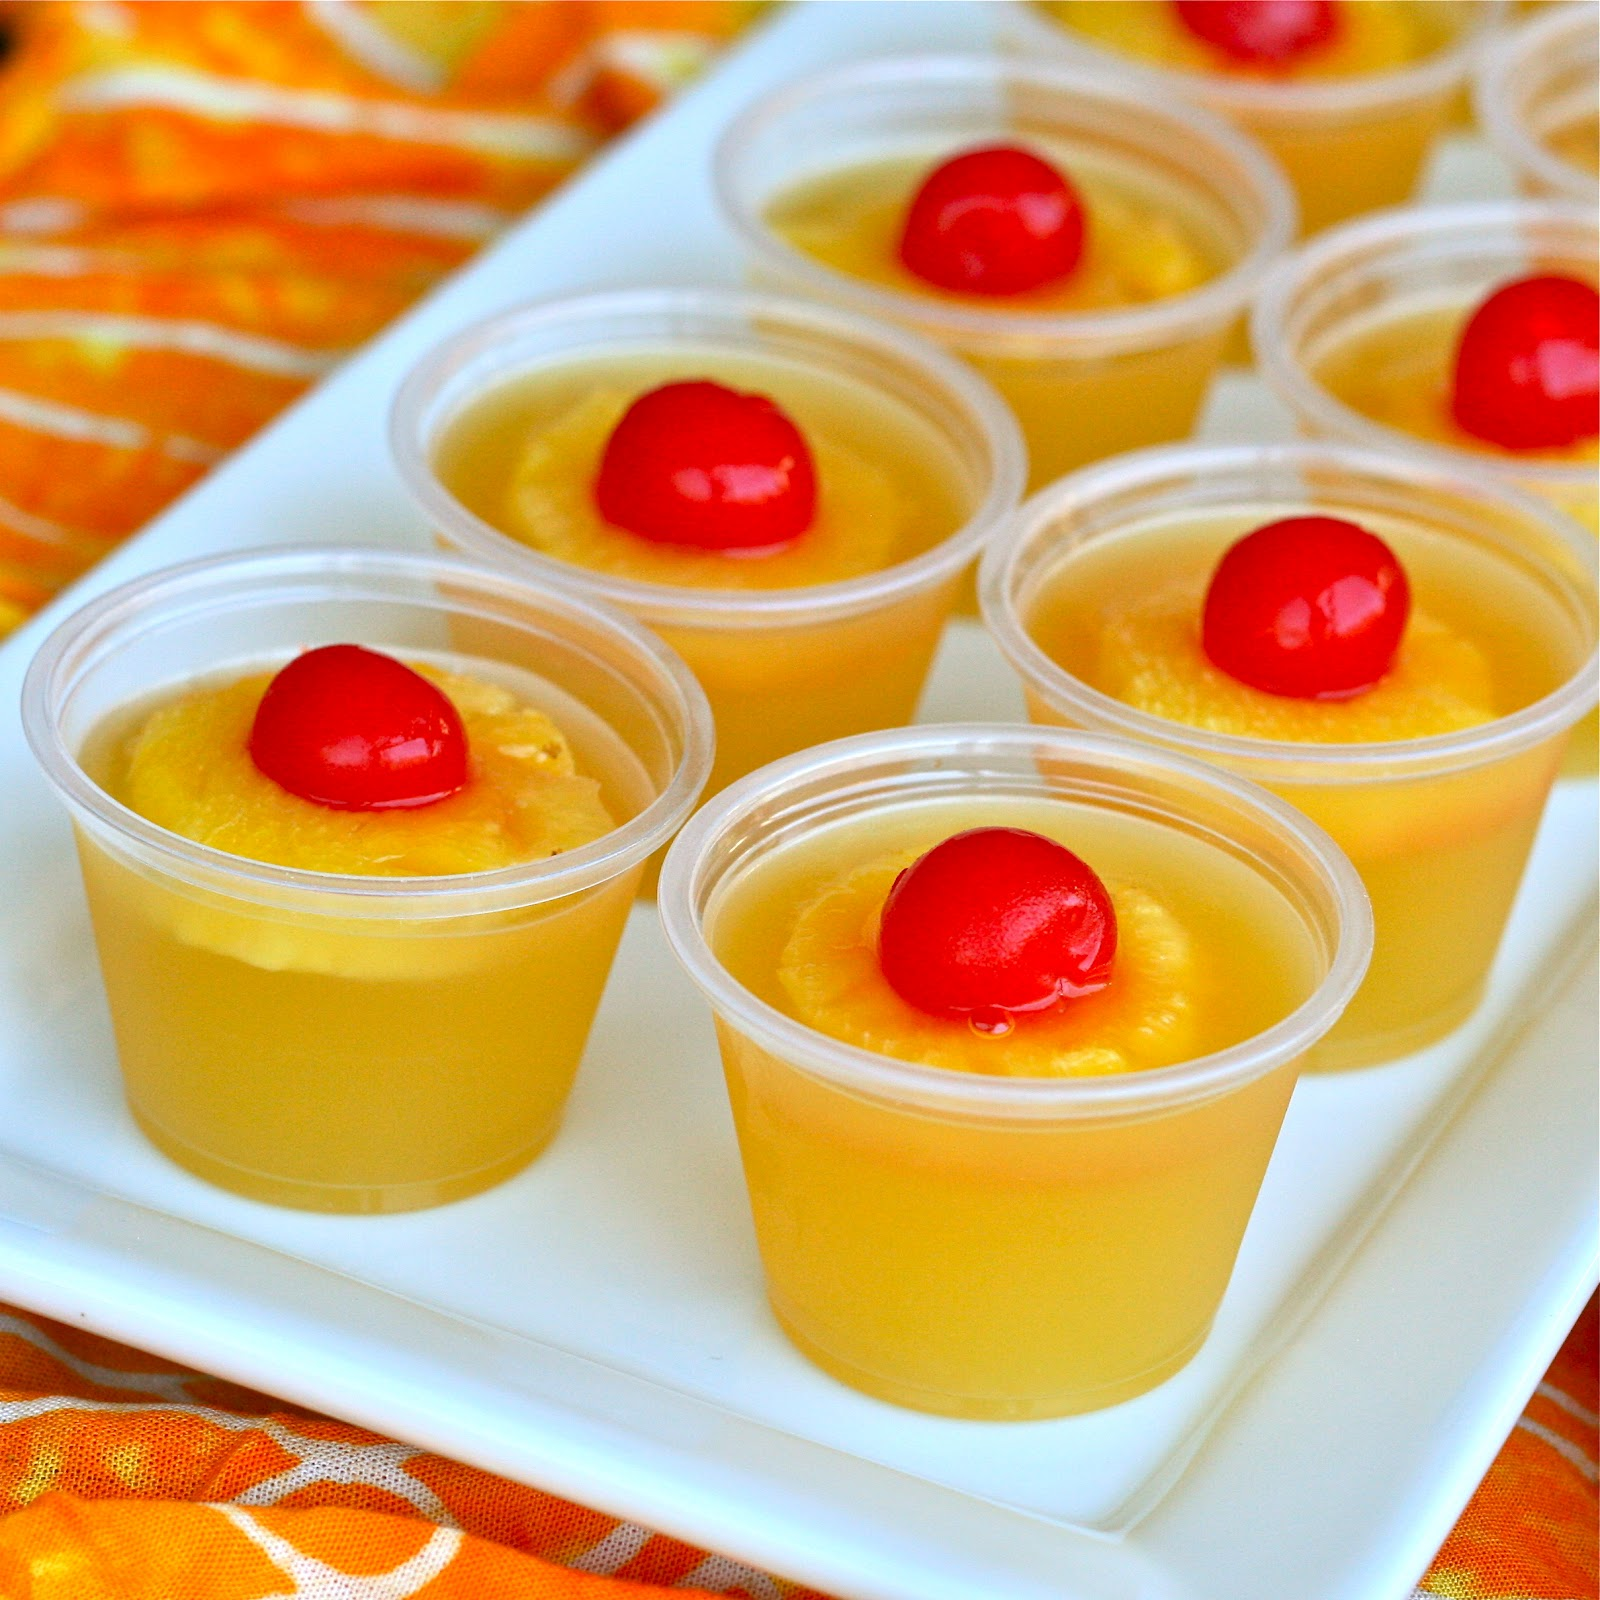 Jello shots with fruit inside -